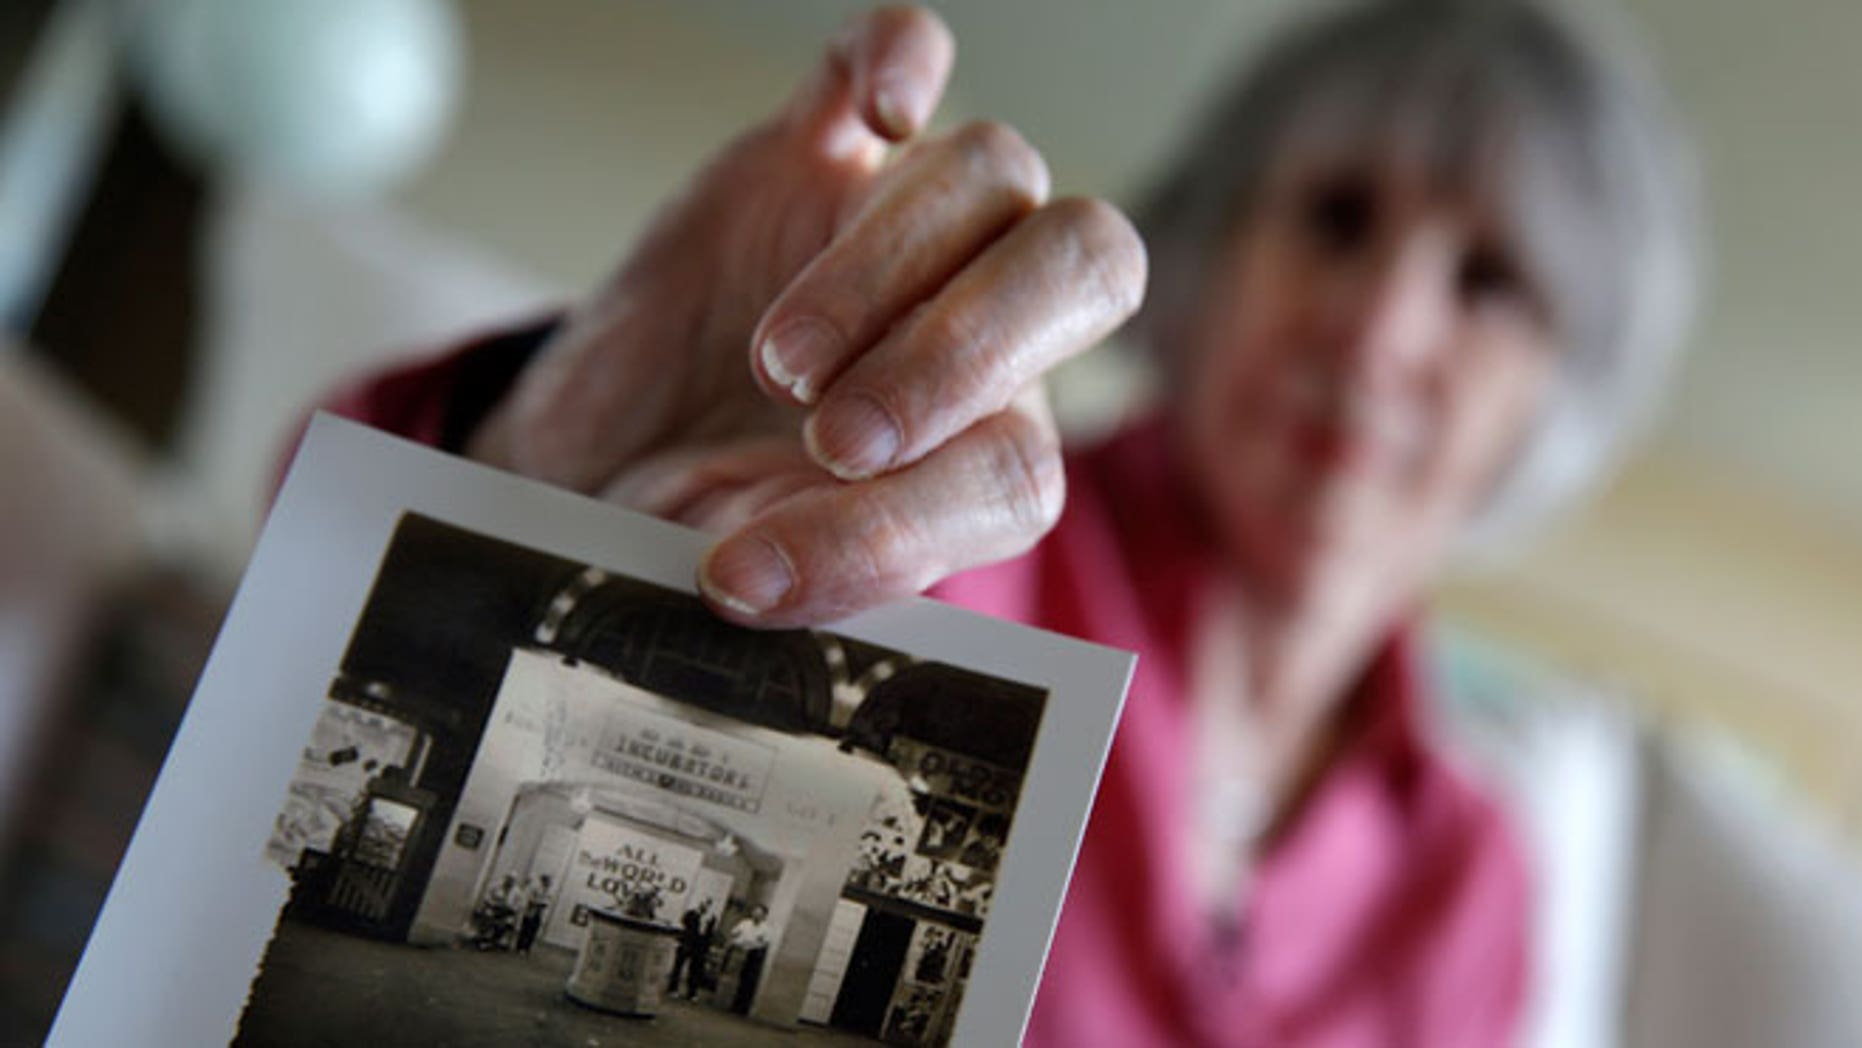 In this photo taken, Thursday, July 23, 2015, Beth Allen displays a photograph at her home in Hackensack, N.J., taken by her father after she was born premature in 1941. A century before reality TV, premature infants were put on display in primitive incubators. People paid 25 cents to see them at world's fairs, on the Atlantic City boardwalk, the sideshows at Coney Island and elsewhere. It was the only option for parents desperate to keep their babies alive, and Dr. Martin Couney did his best to oblige. From 1903 to 1943, Couney estimated, he kept alive 7,500 of the 8,500 children that passed through his incubator sideshows.